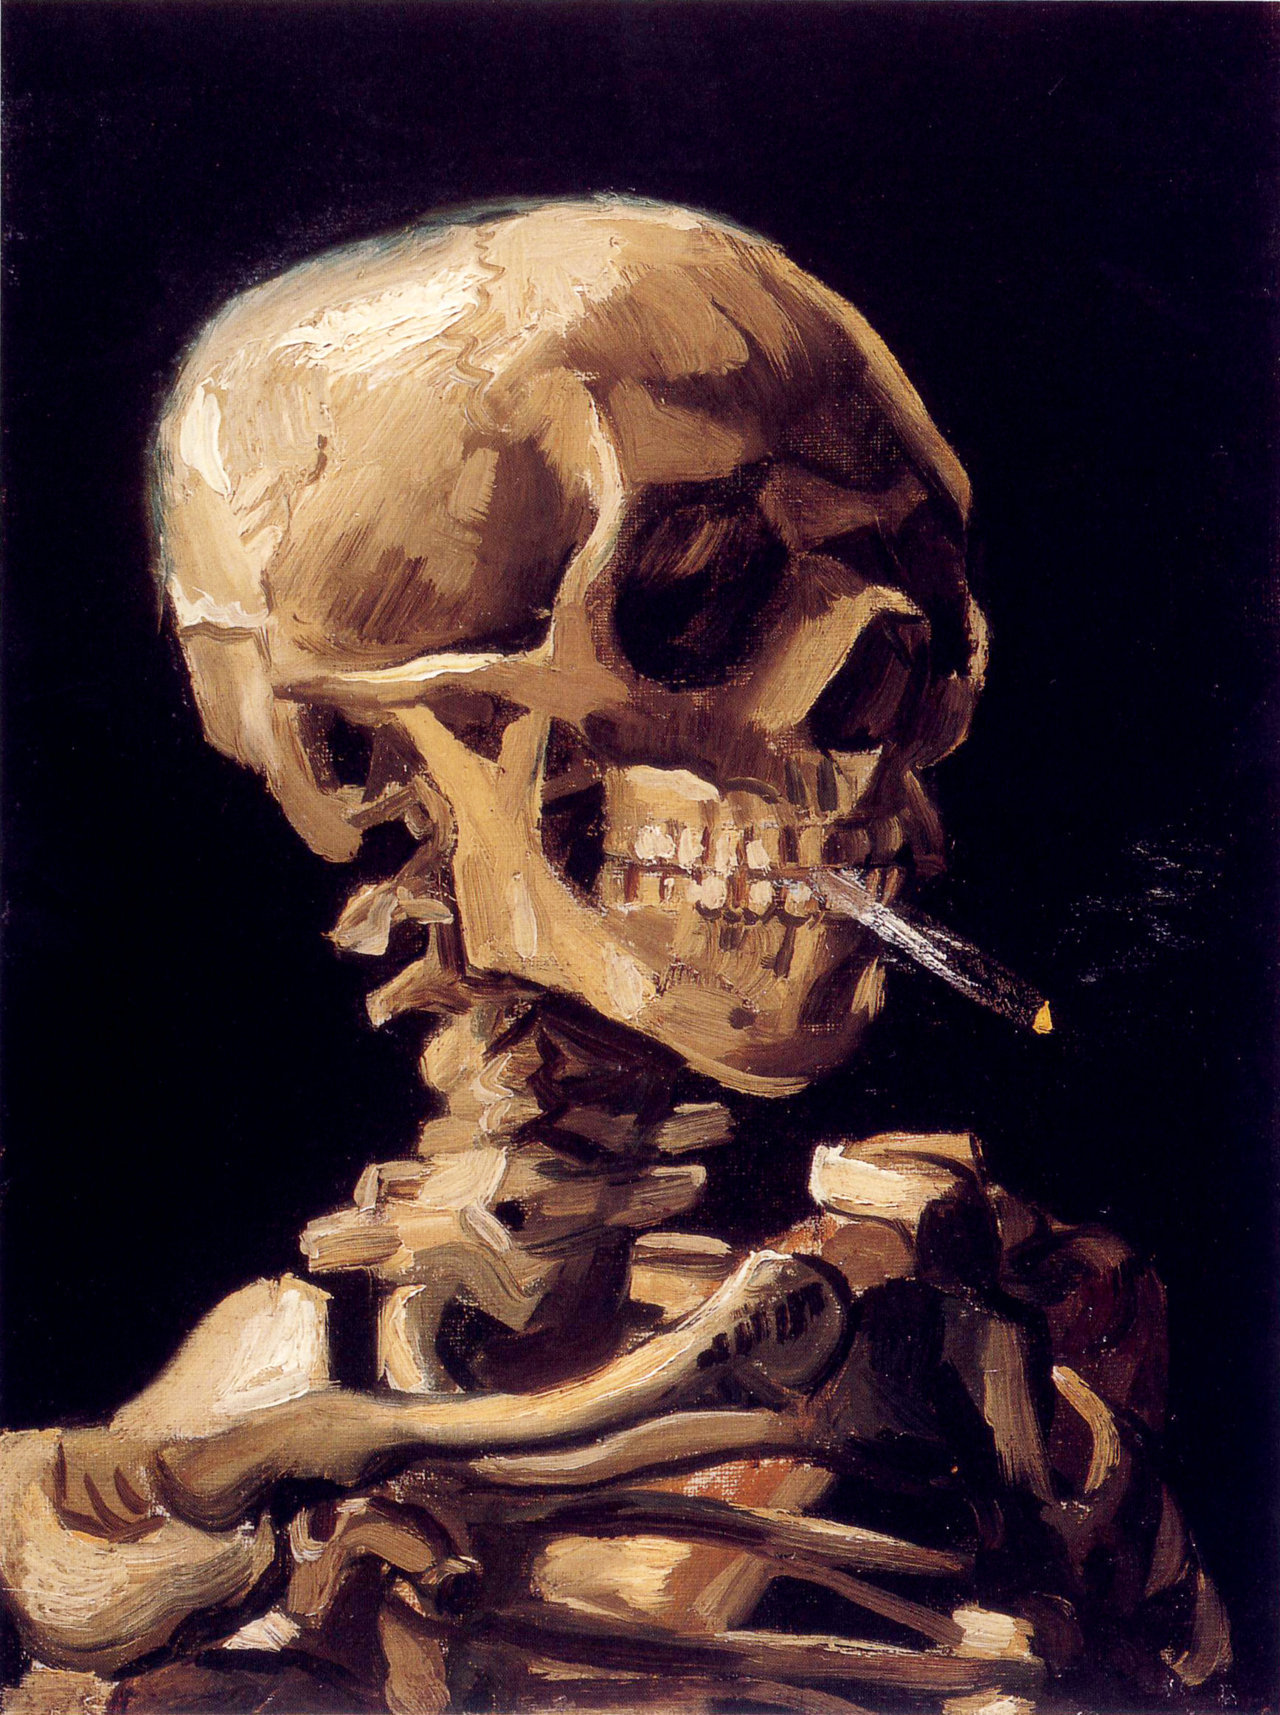 fckyeaharthistory:  Vincent van Gogh - Skull with a Burning Cigarette, 1885-86. Oil on canvas